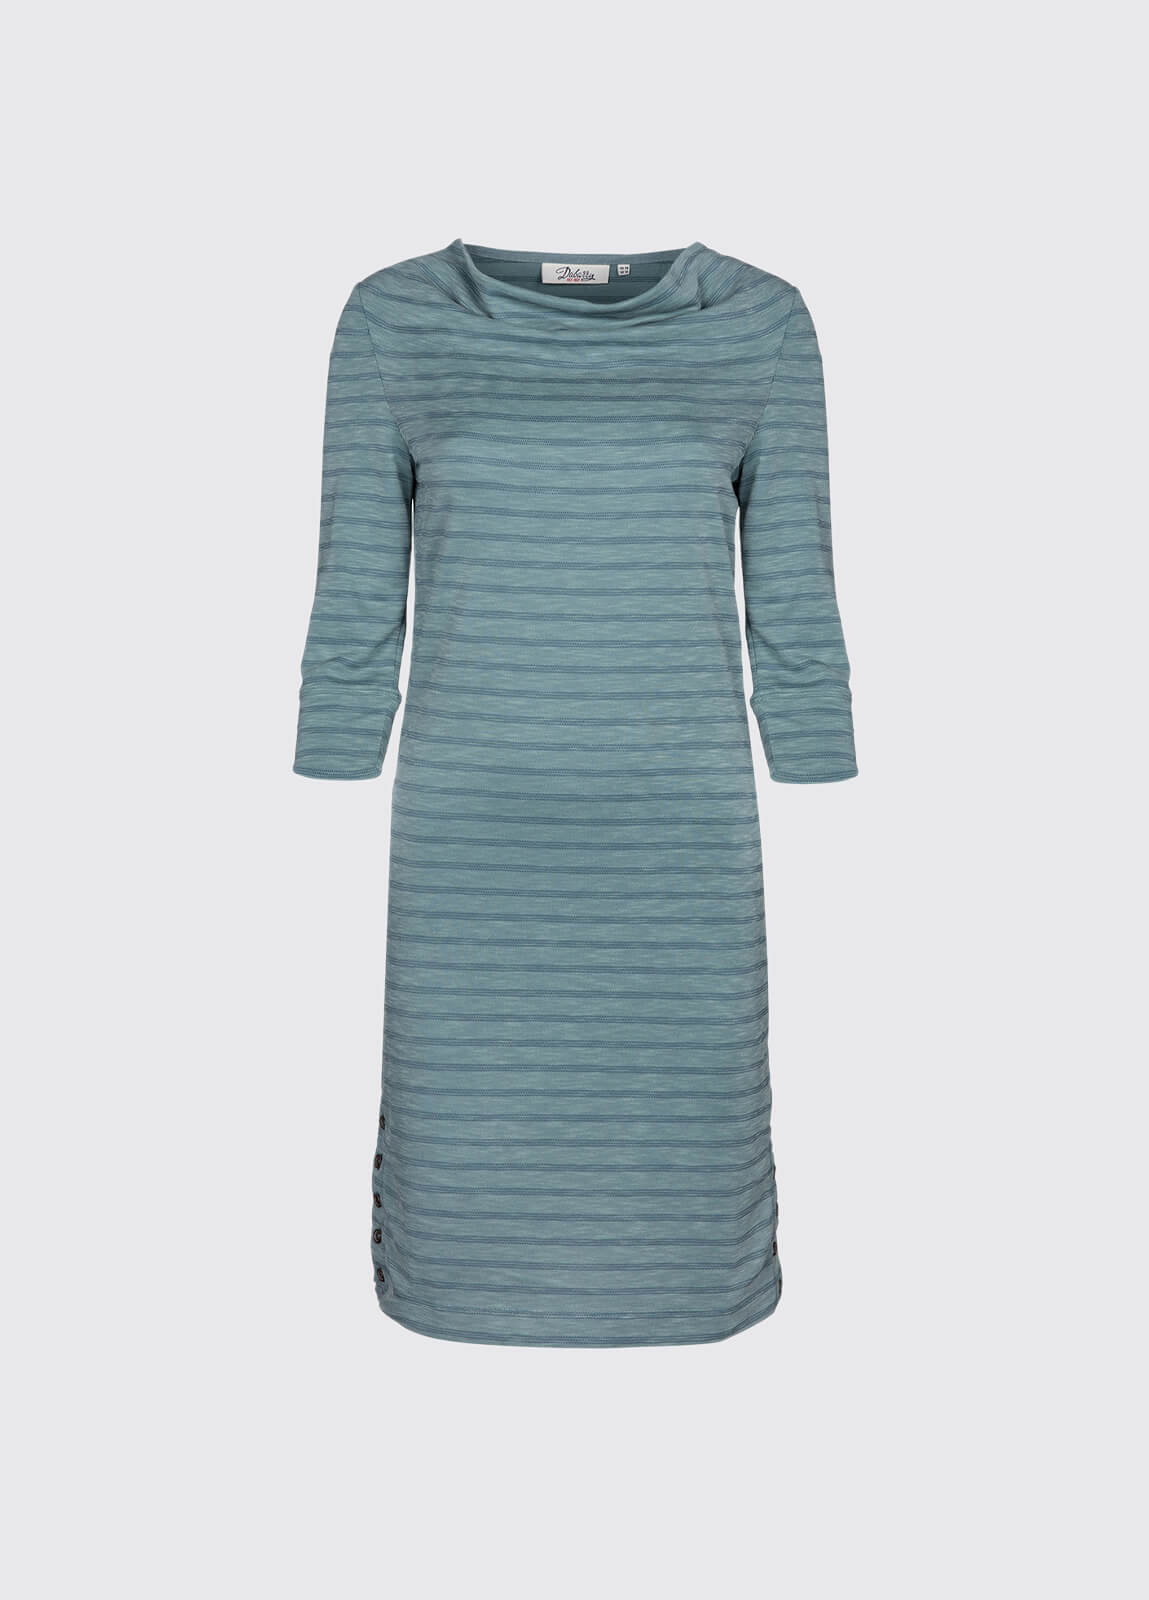 Ennis Cowl Neck Dress - Sage